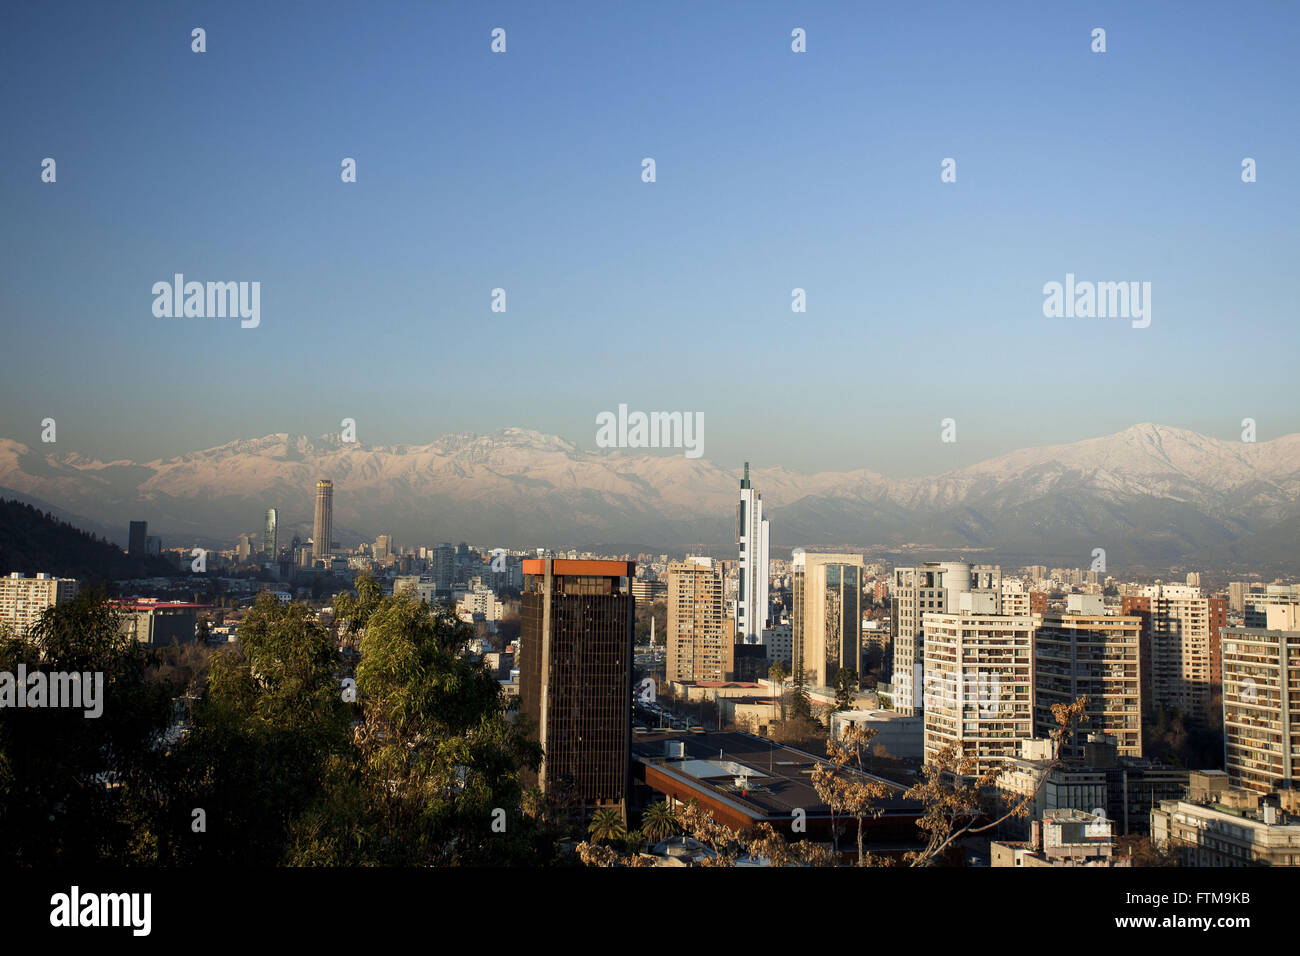 View of Santiago from Cerro San Cristobal and the Andes in the background - Stock Image